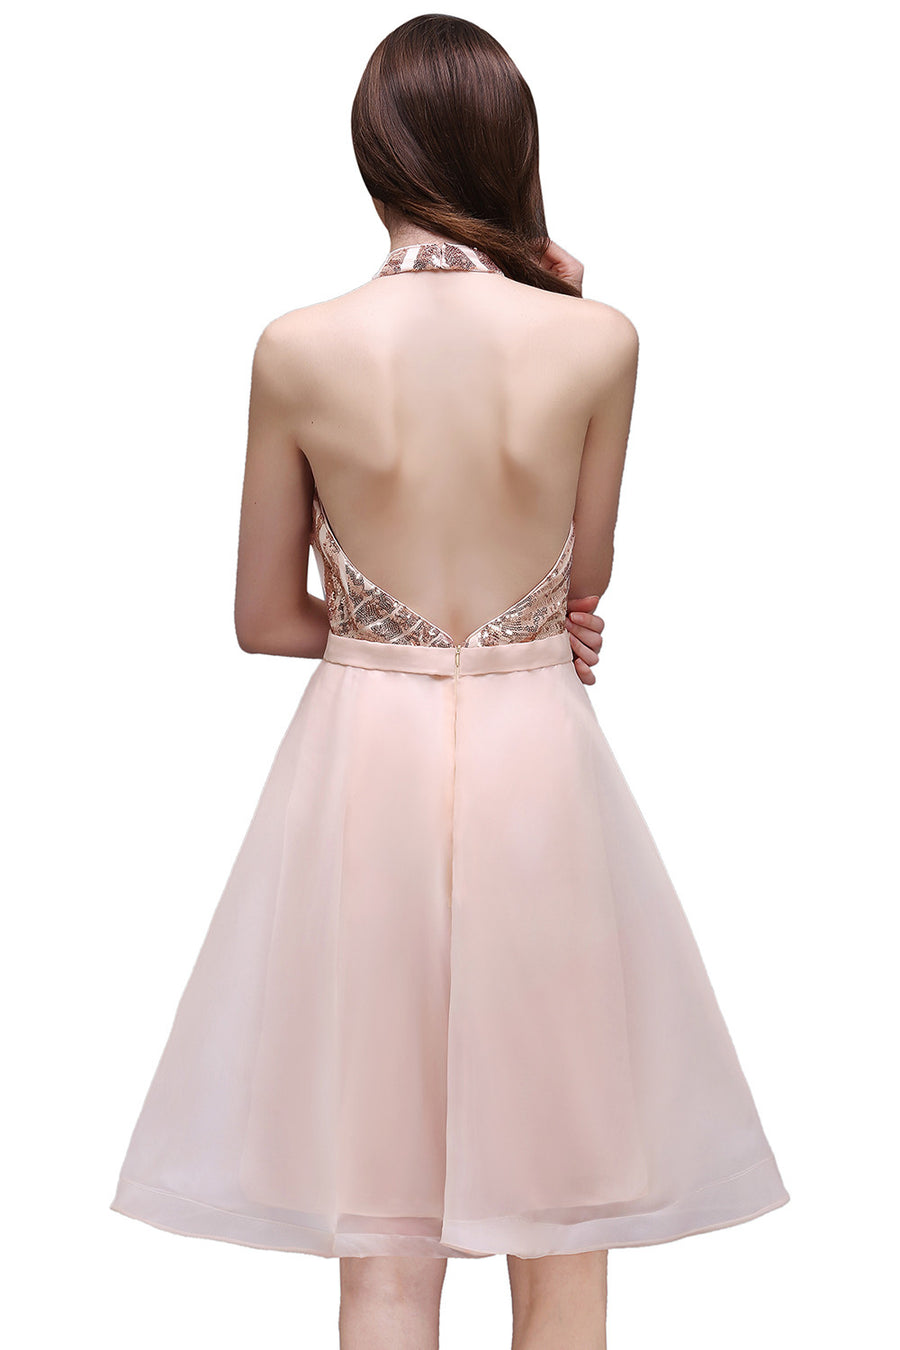 Halter Short Glitter Prom Dresses 2017 Off The Shoulder Ball Gown Backless Organza Sequined Party Dresses